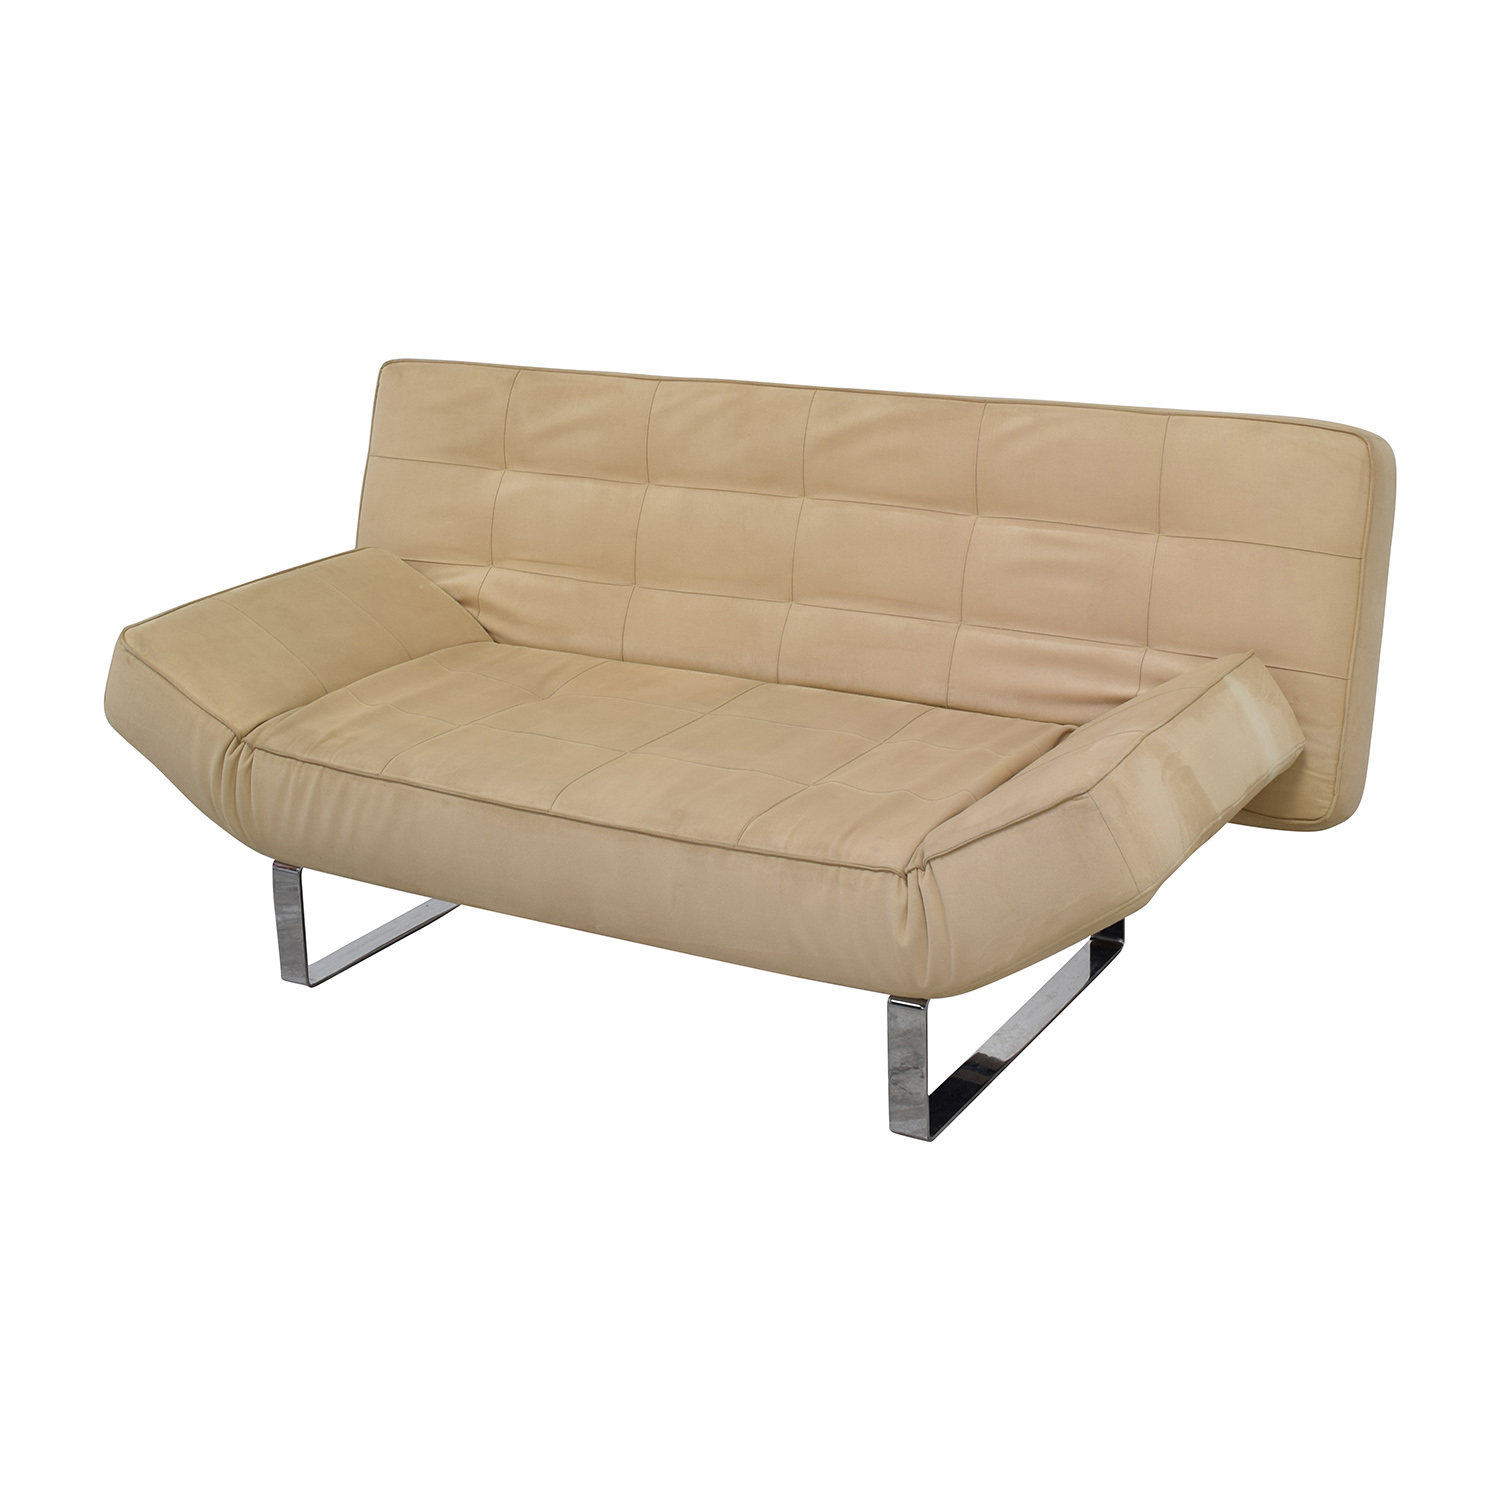 63 off boconcept boconcept zen beige sleeper sofa sofas for Zen sofa bed